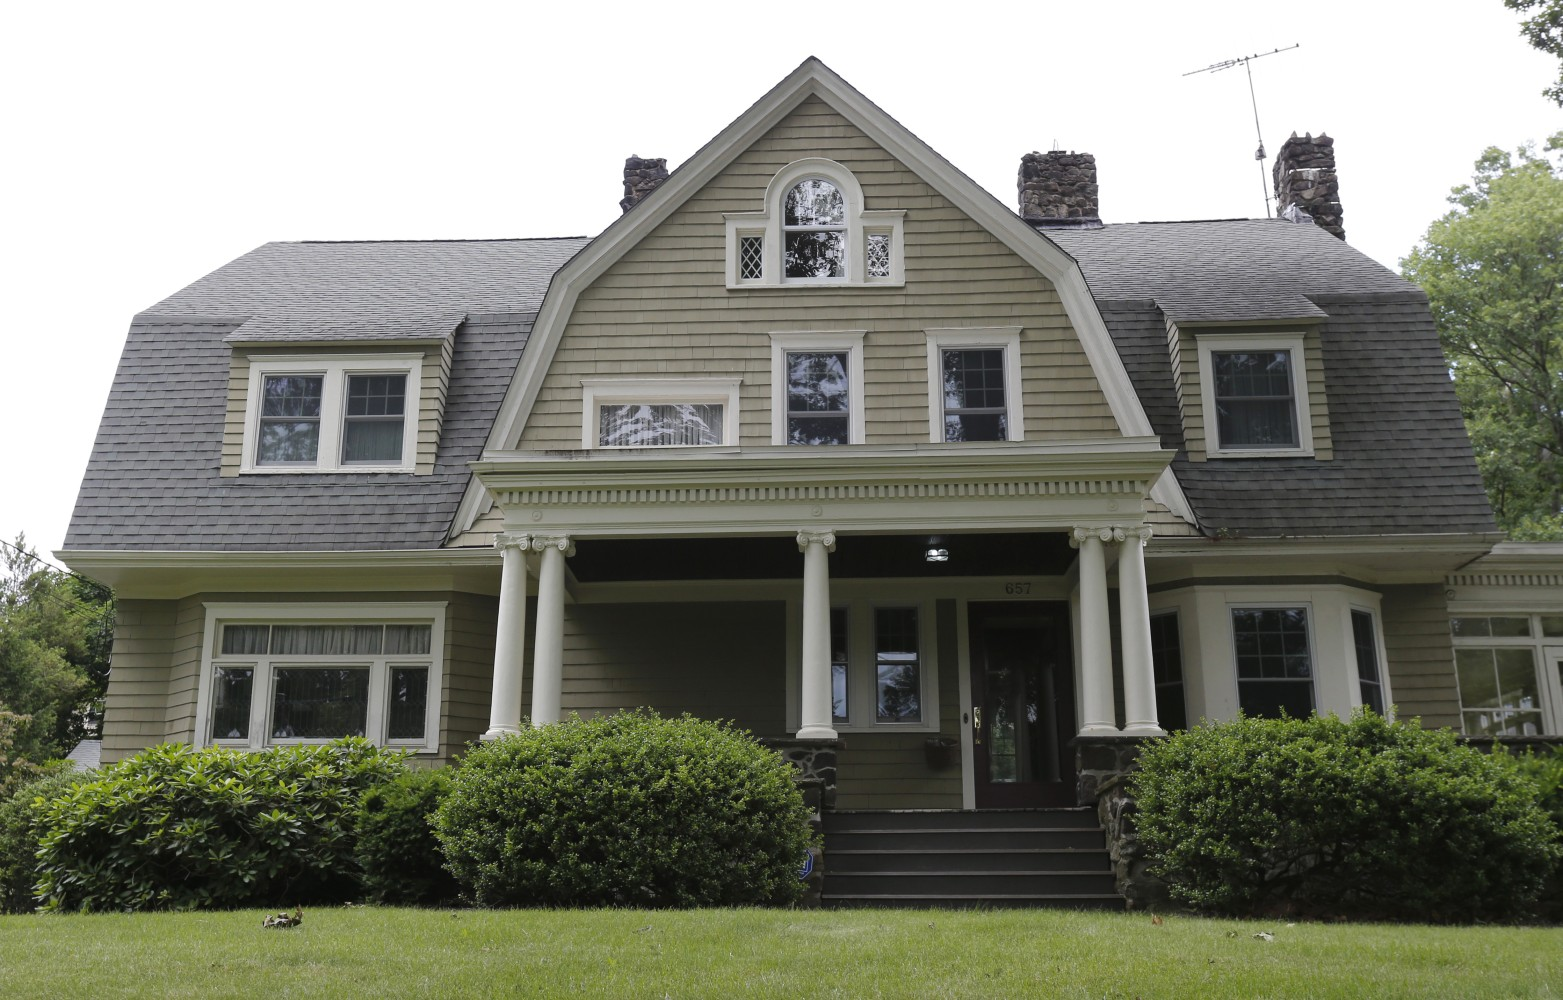 Westfield new jersey house with alleged 39 watcher 39 back for New house